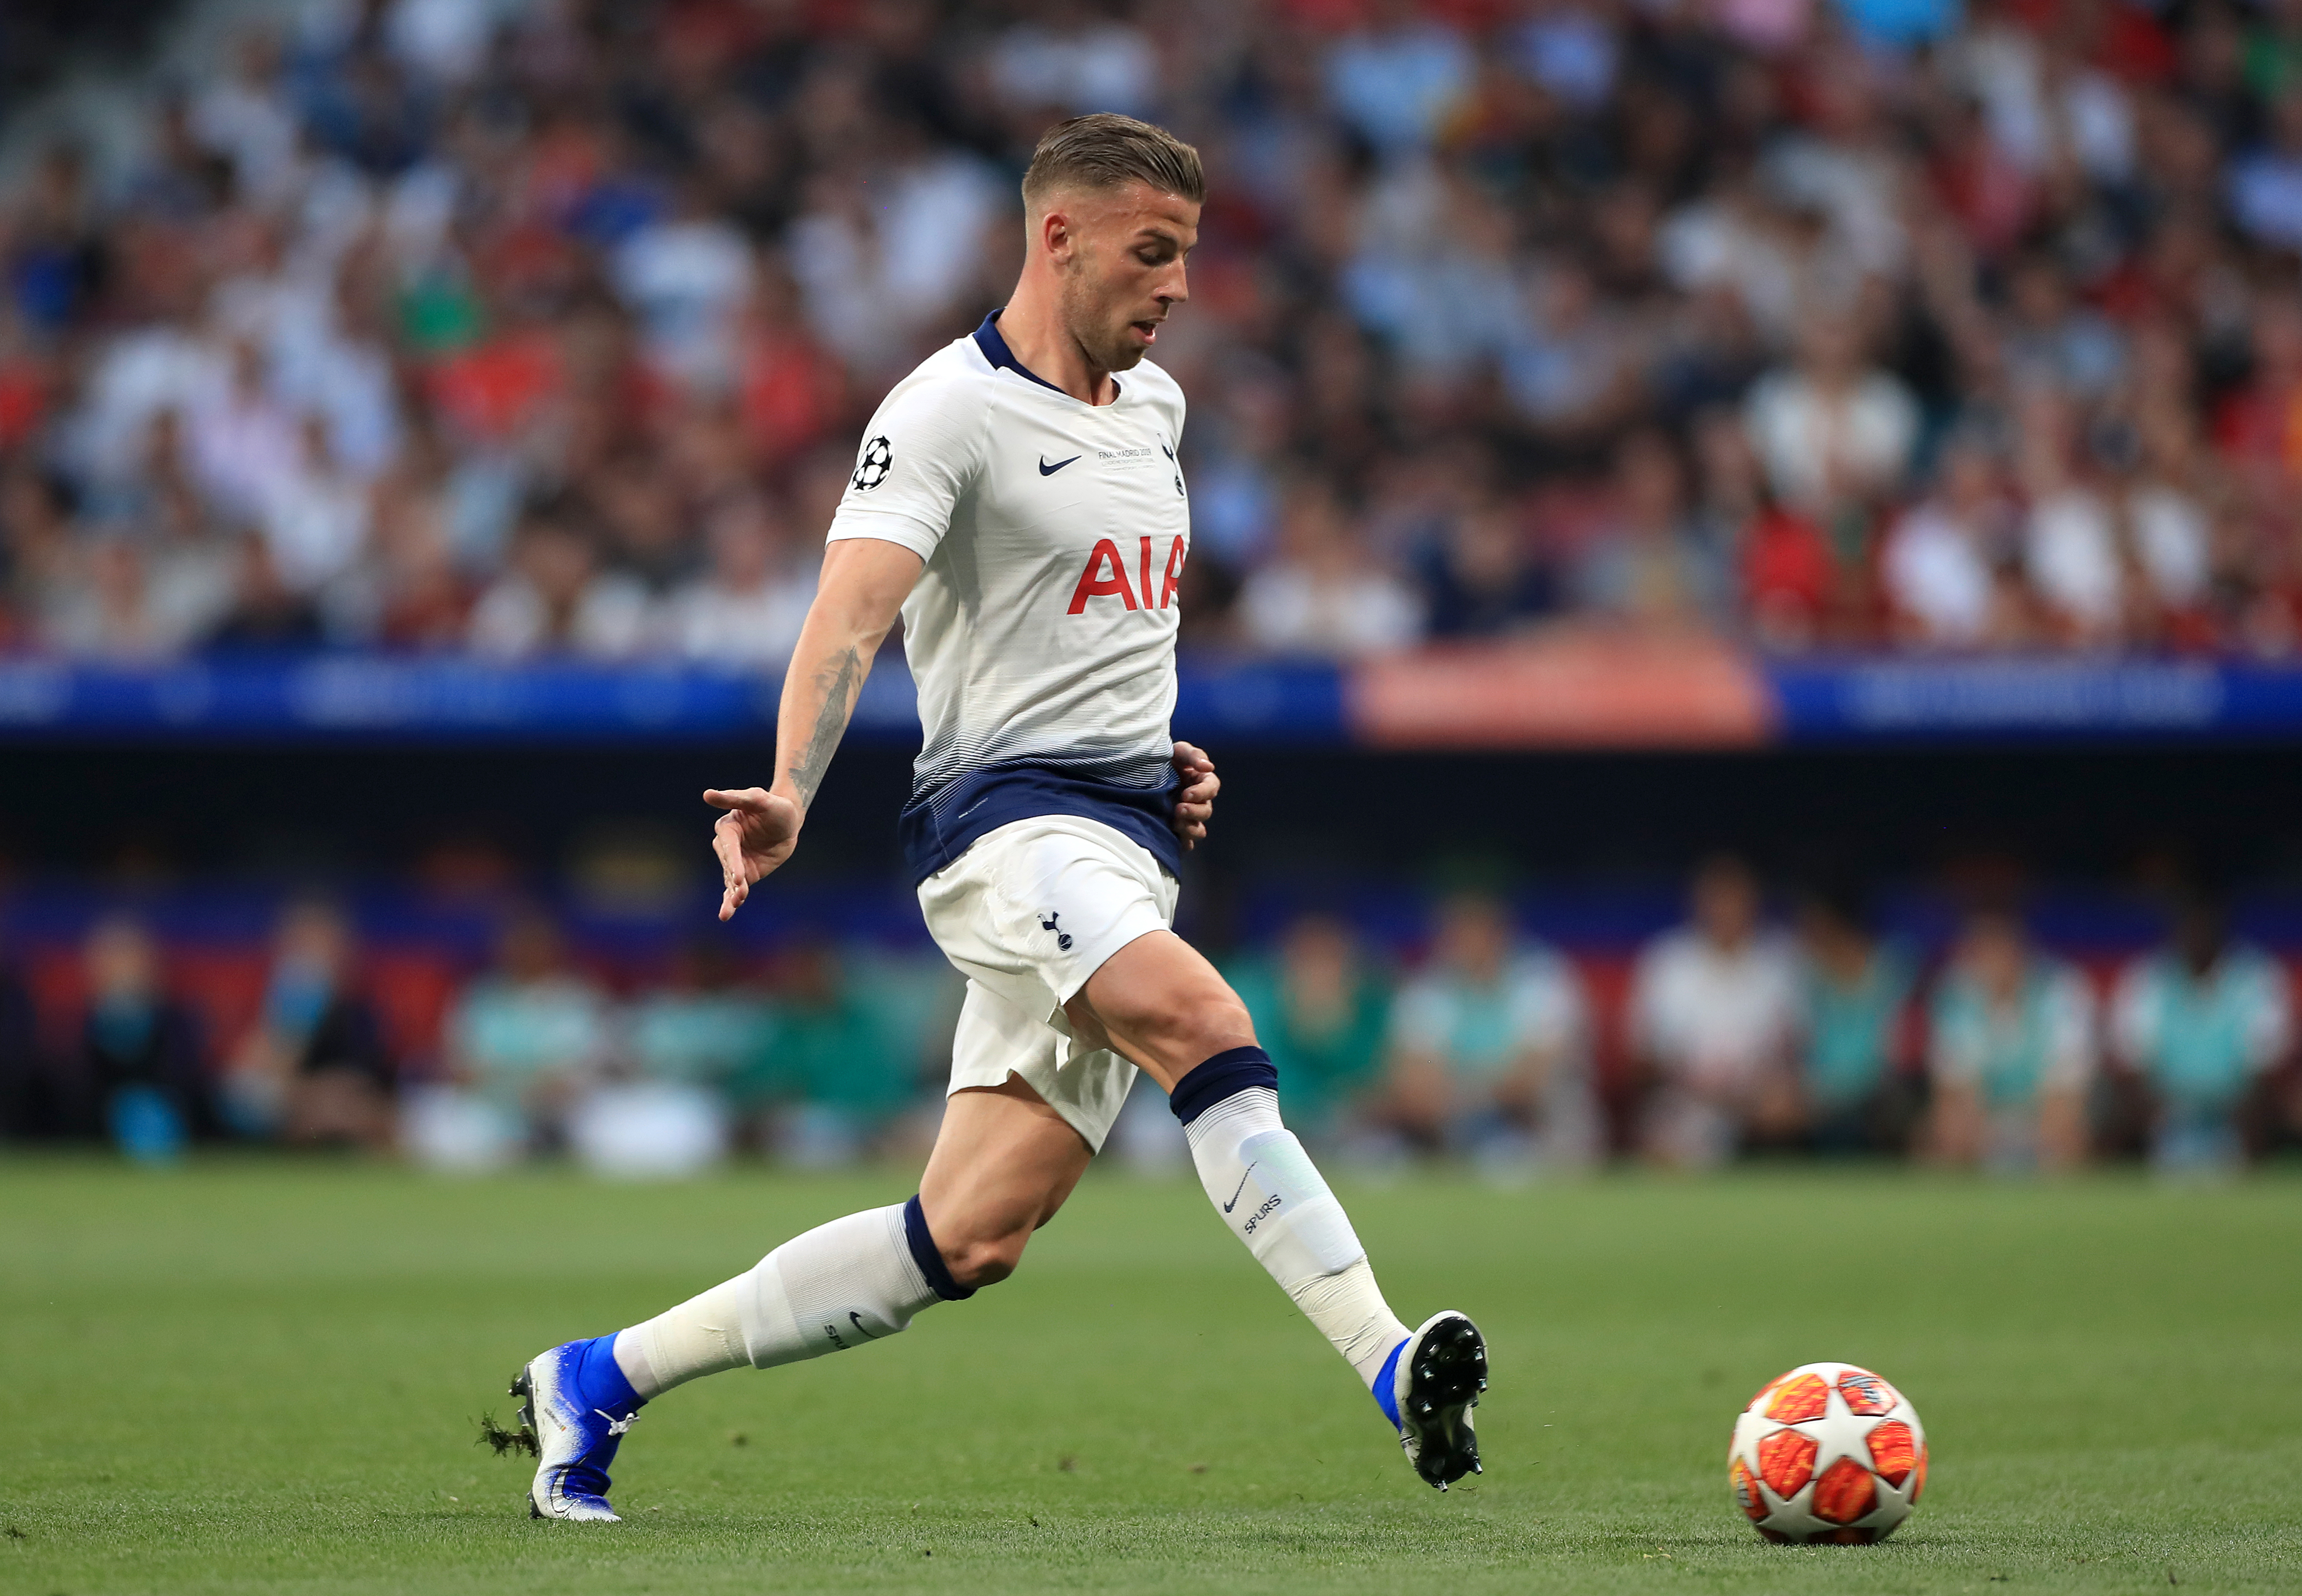 Toby Alderweireld has been linked with a move away from Tottenham